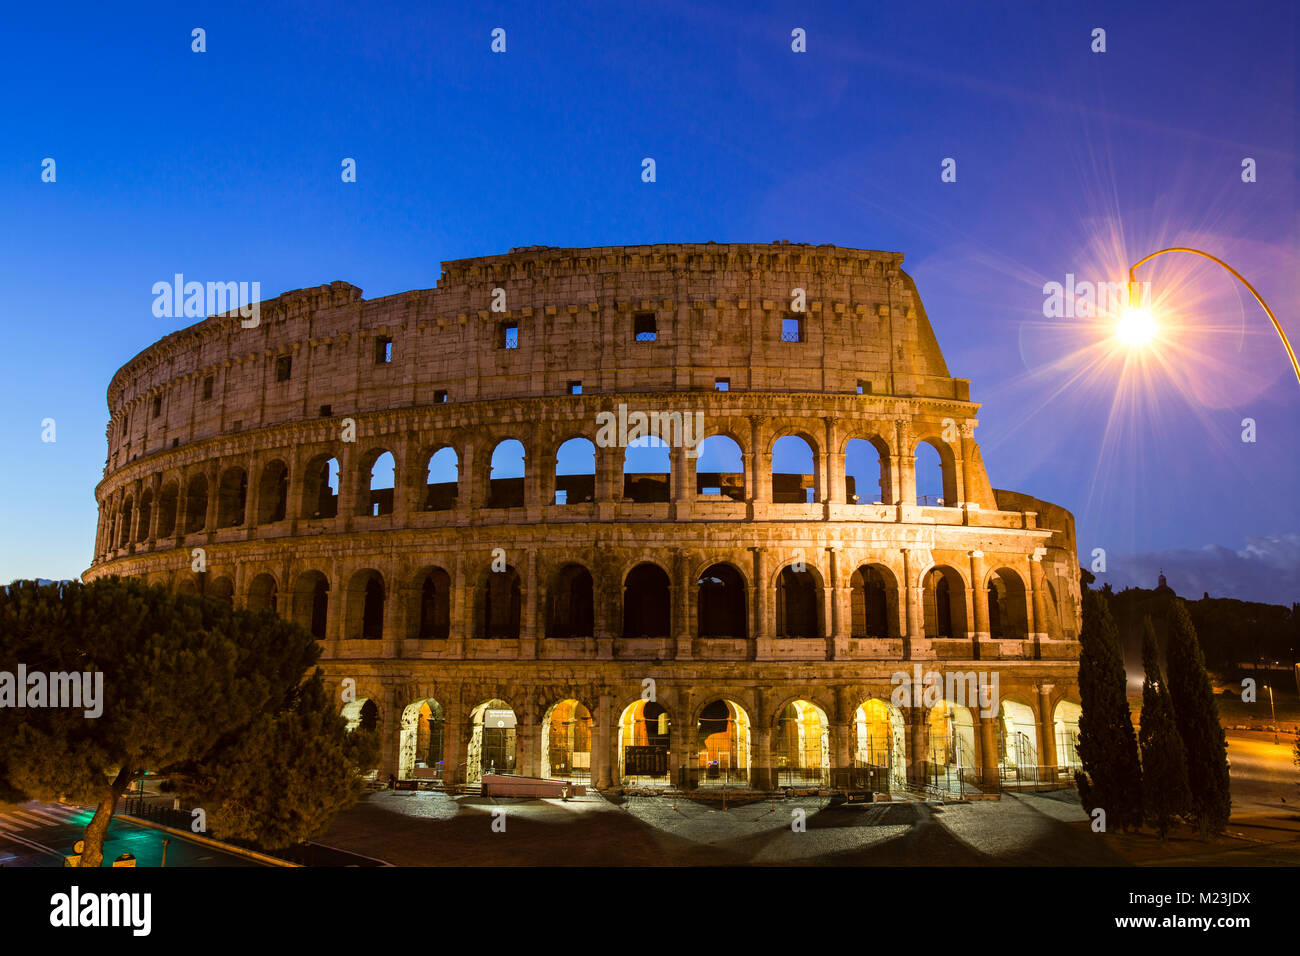 Colosseum at twilight, Rome, Italy - Stock Image